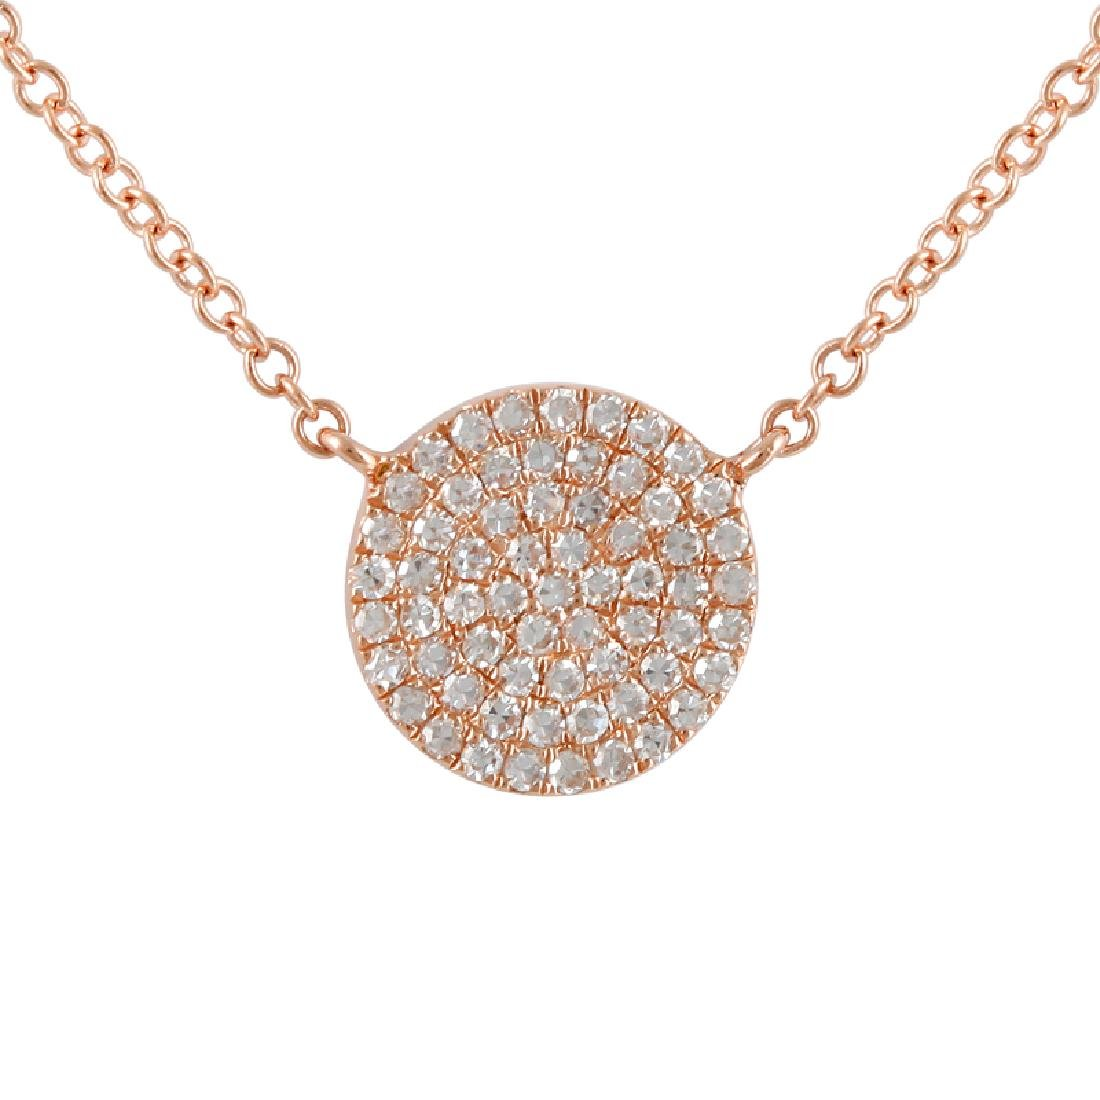 14KT Rose Gold Diamond Necklace